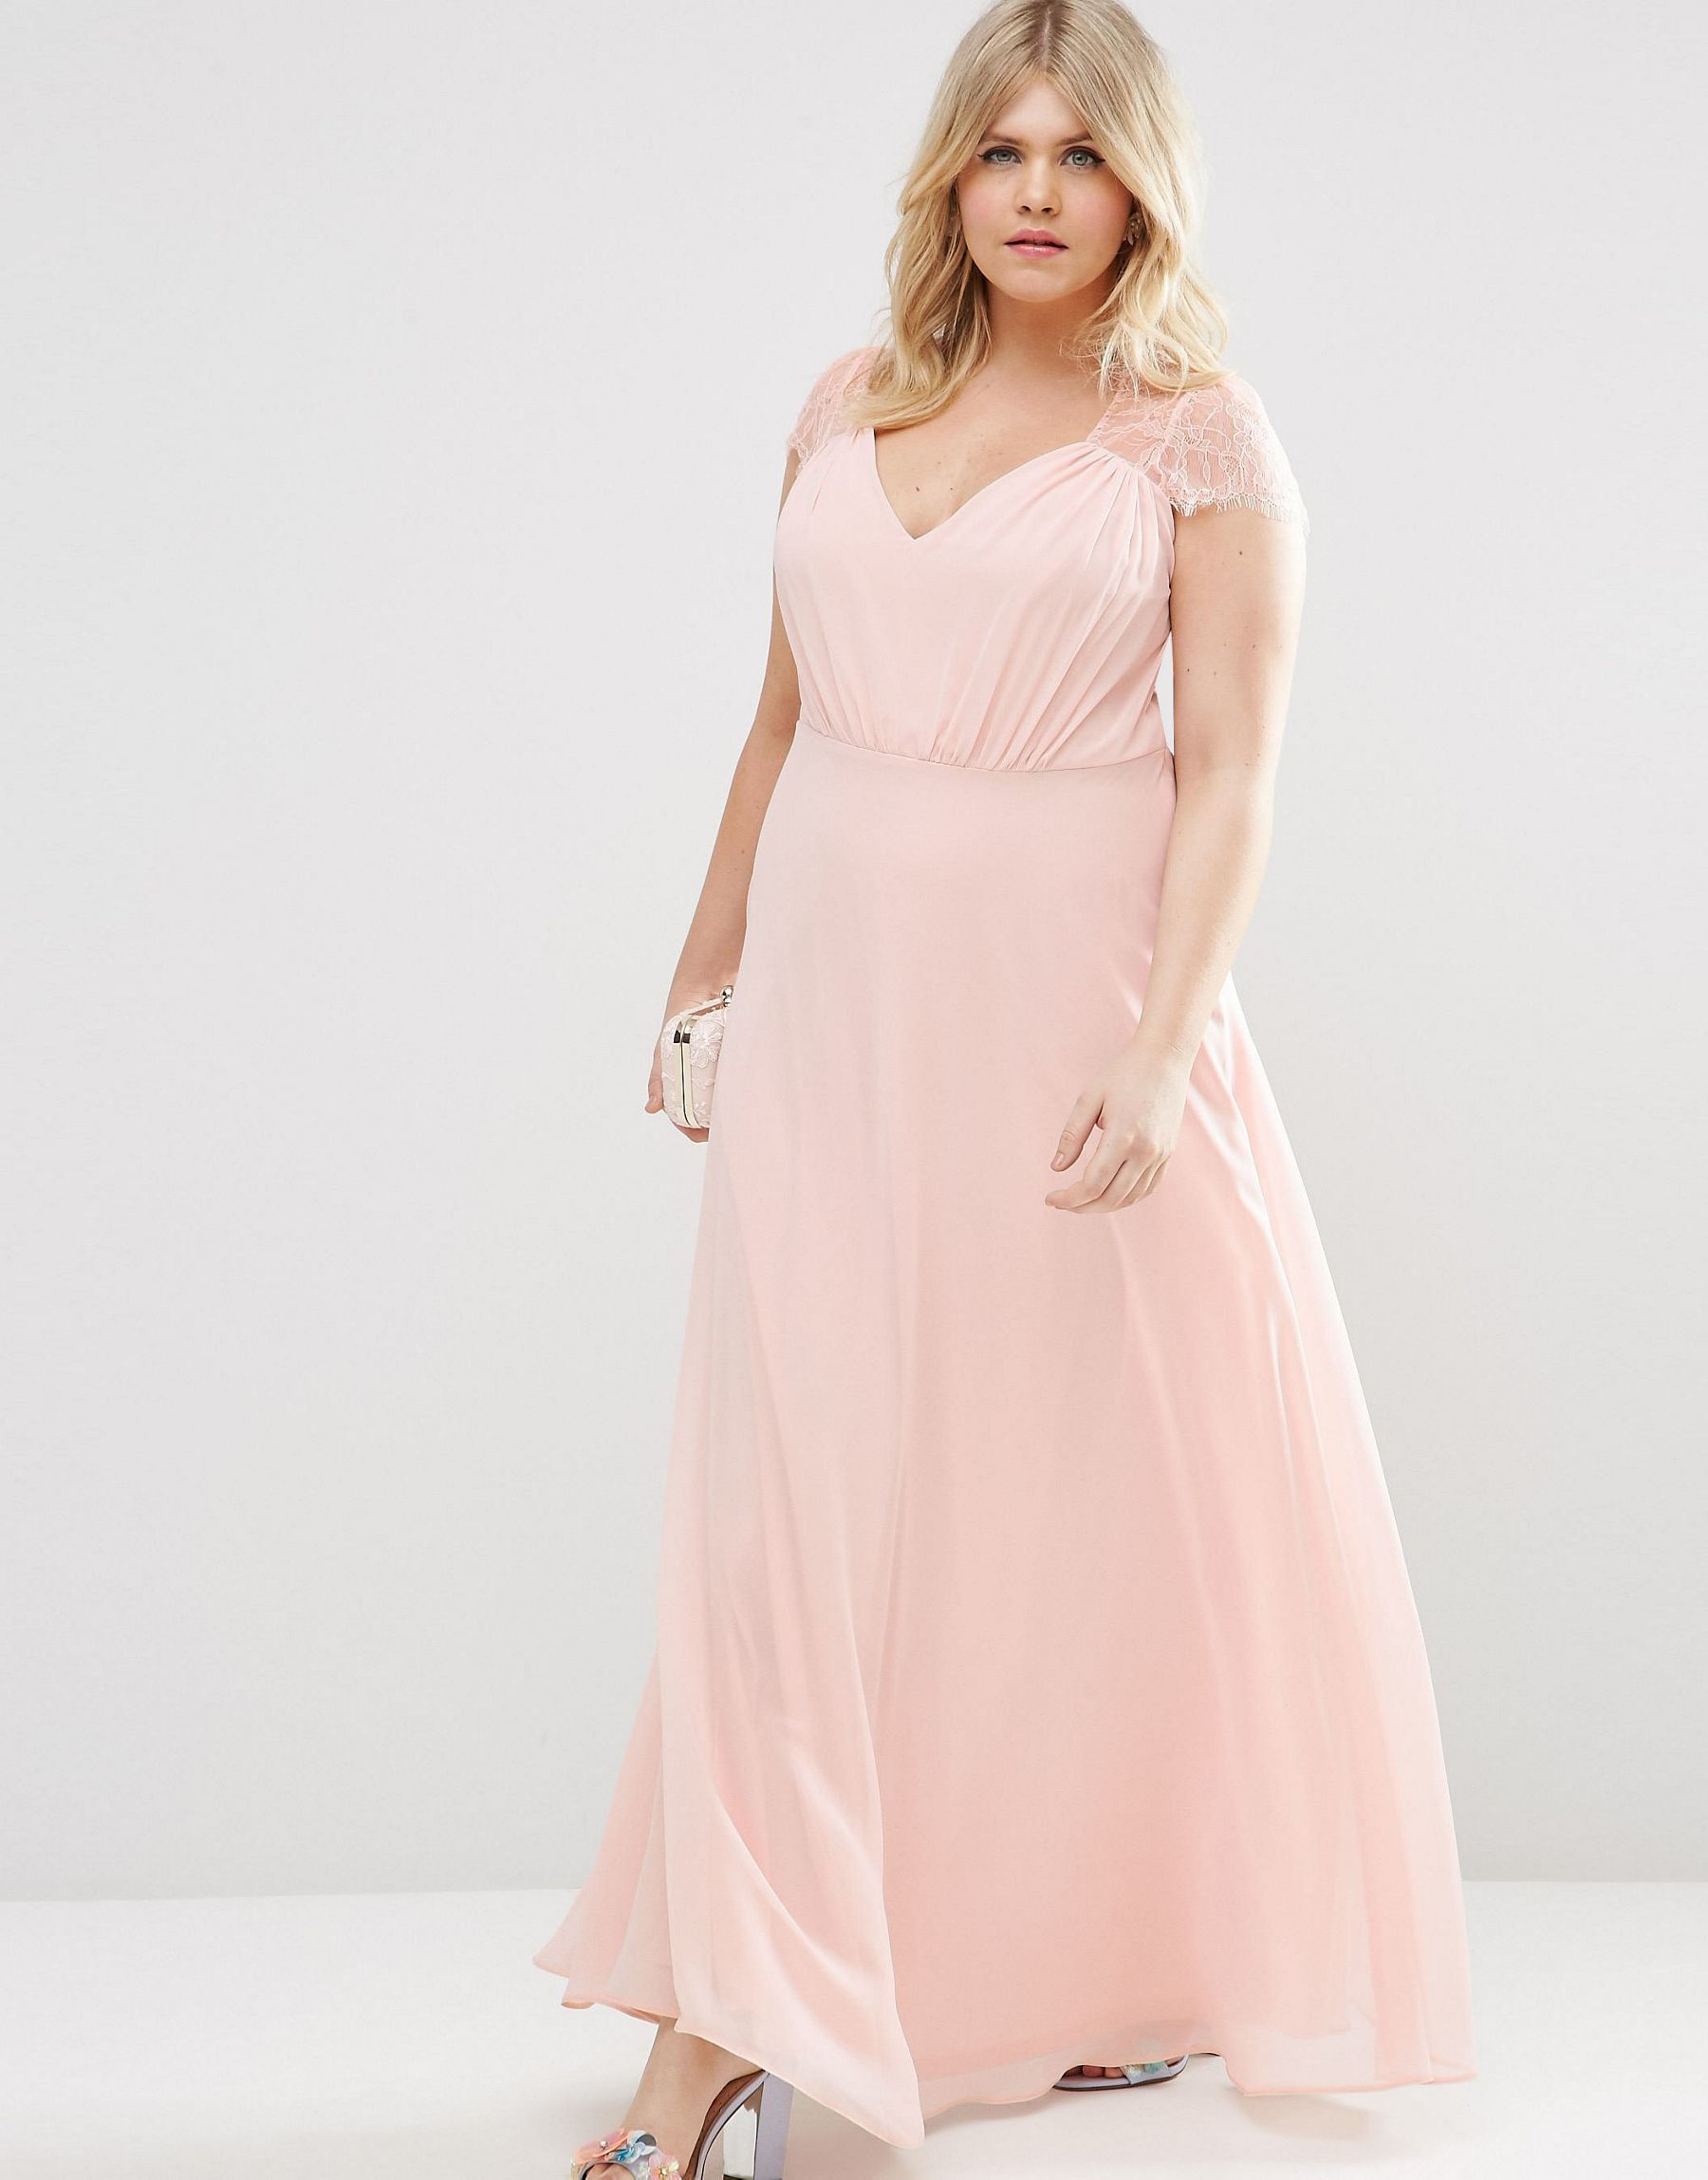 Lyst - Asos Curve Kate Lace Maxi Dress in Natural